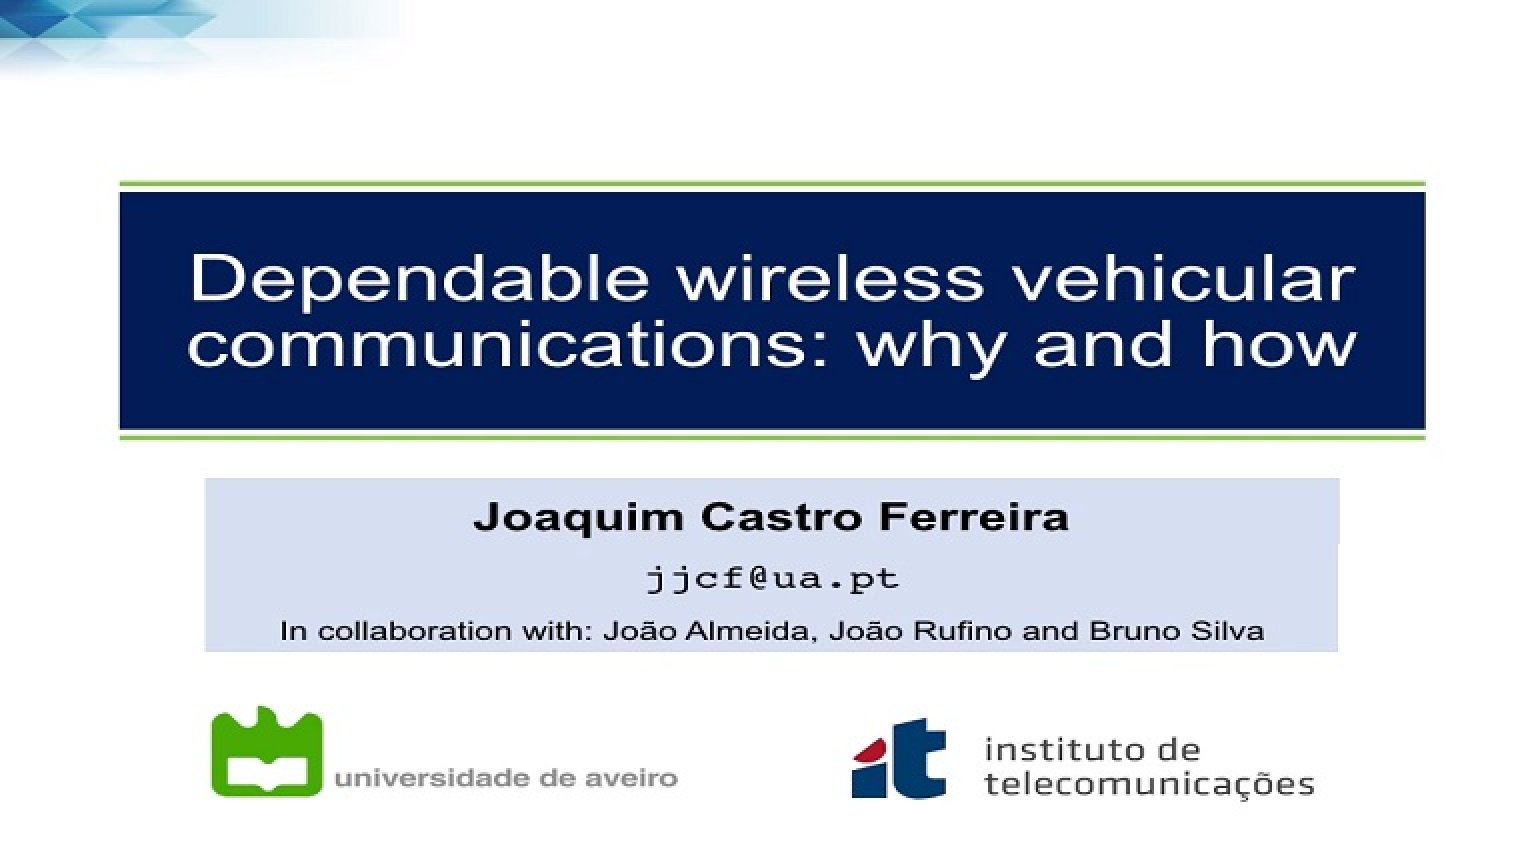 Video - Dependable wireless vehicular communications: why and how